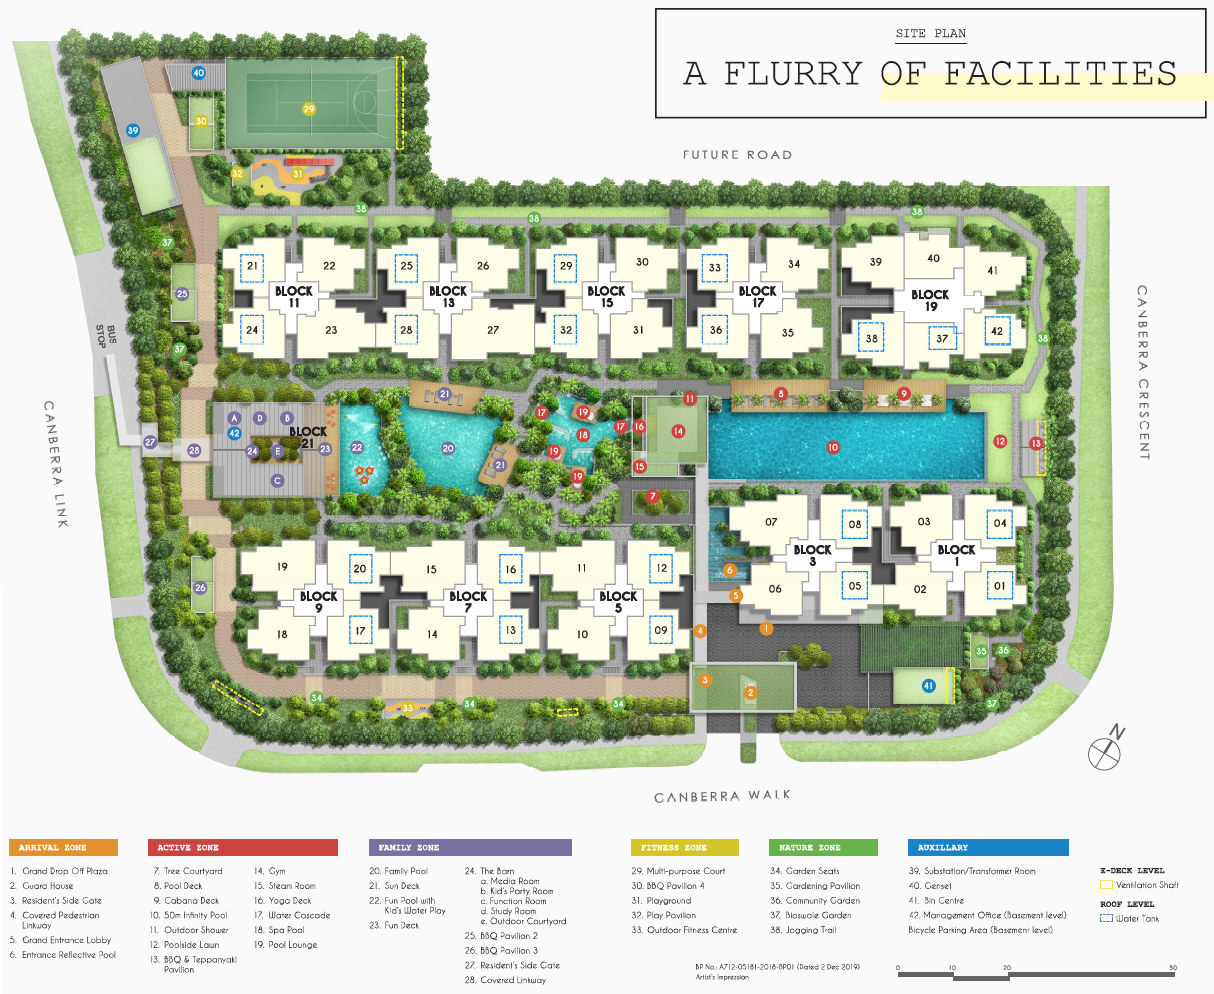 Parc Canberra Site Plan Layout with Legend